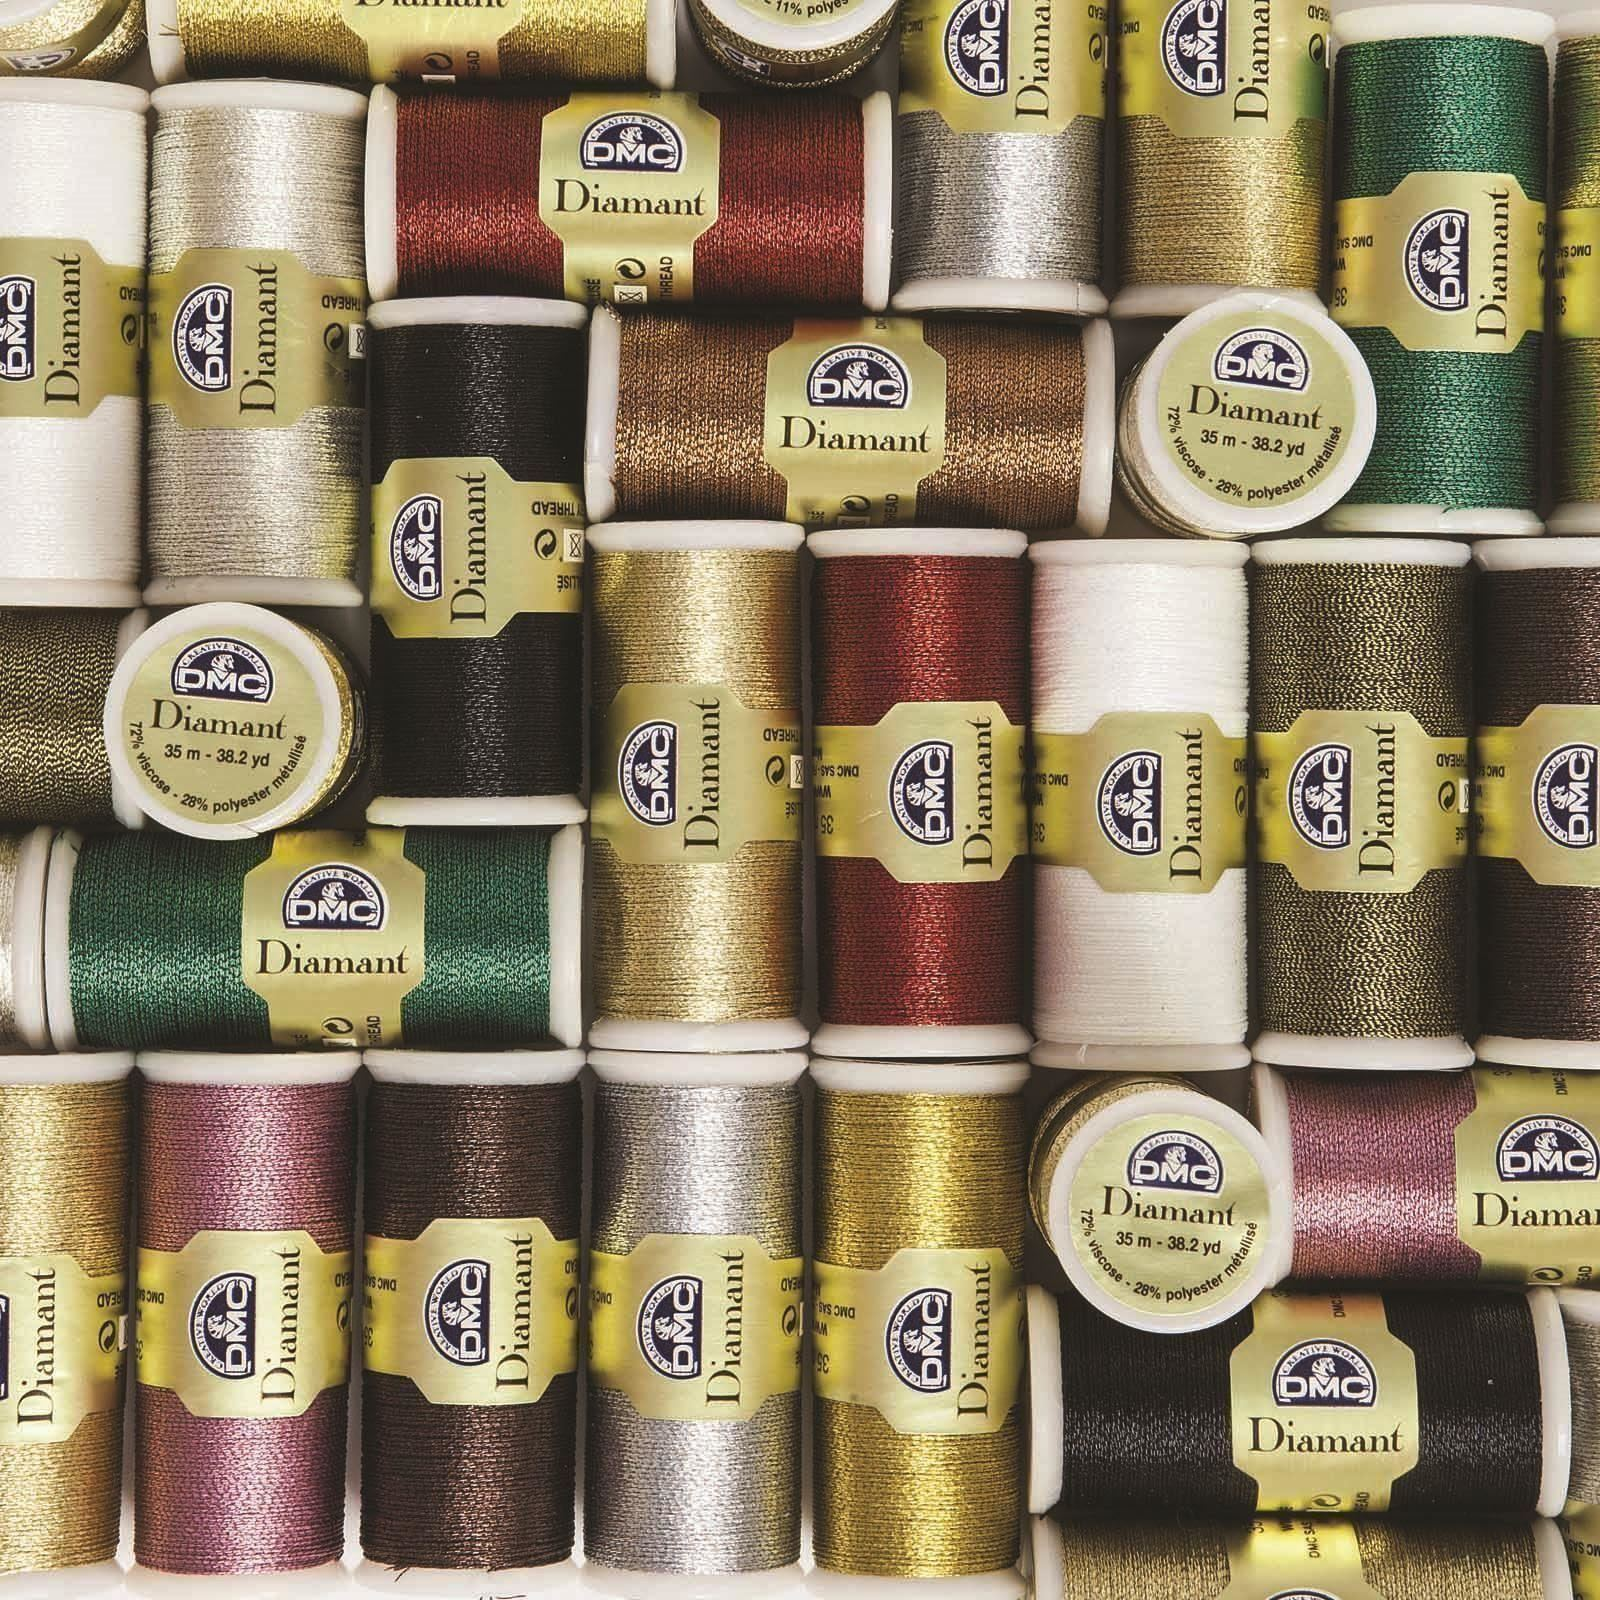 DMC-Diamant-Metallic-Embroidery-Thread-35m-Spool-Cross-Stitch thumbnail 8